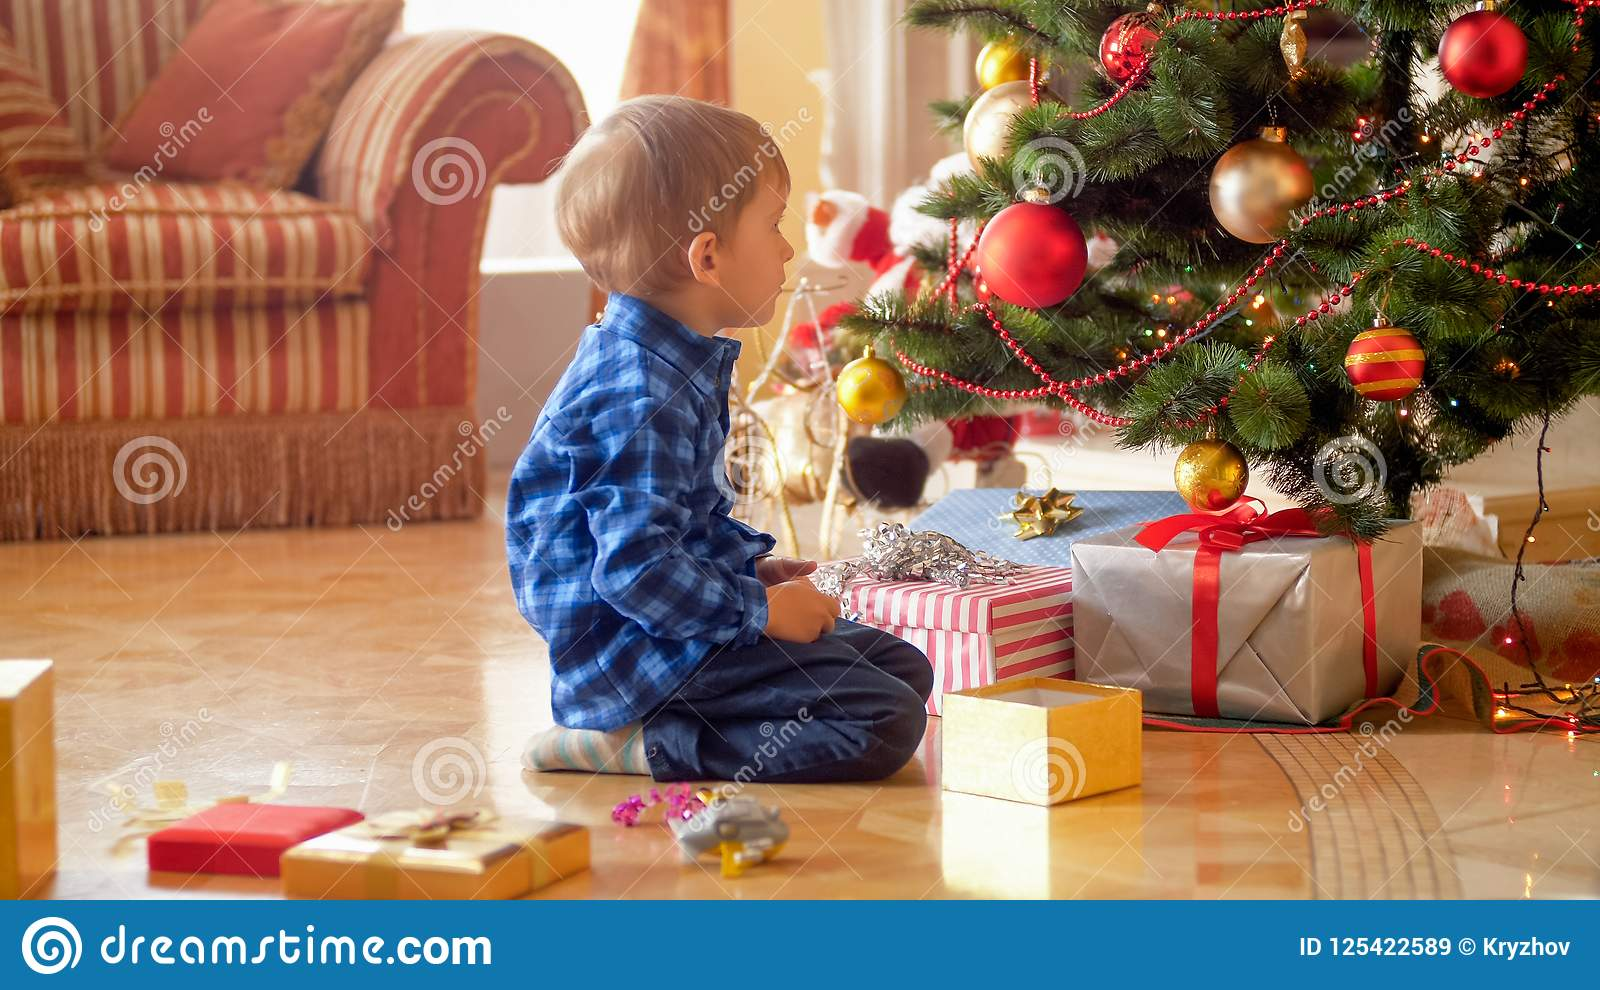 3 Years Old Boy Sitting Under Christmas Tree And Looking On Gifts Presents